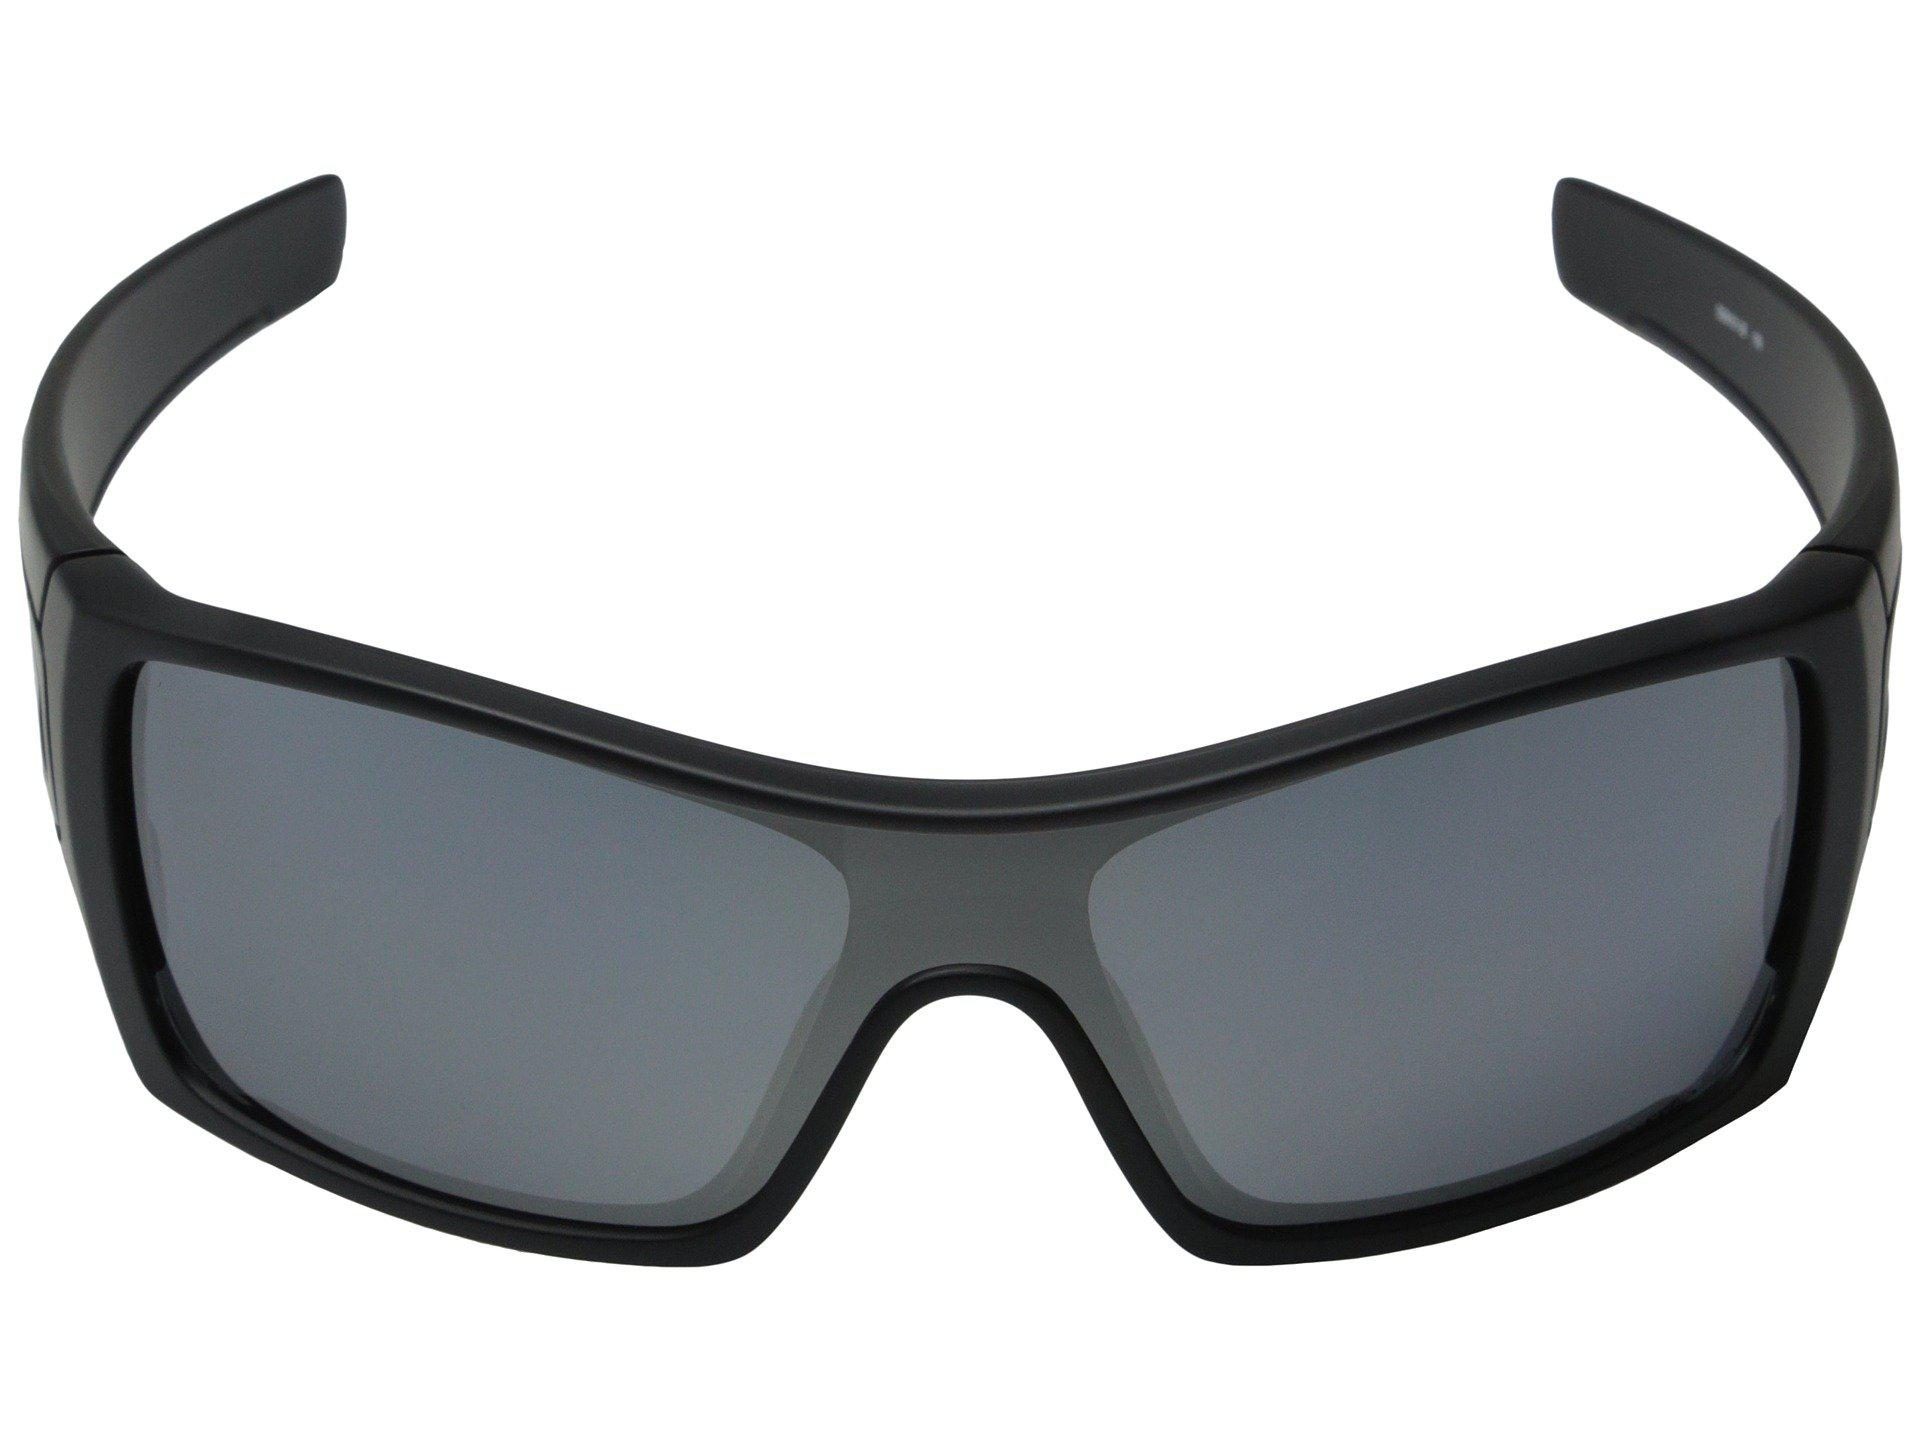 d4528203b8 Oakley - Batwolf (polished Black W  Prizm Sapphire) Sport Sunglasses for  Men -. View fullscreen